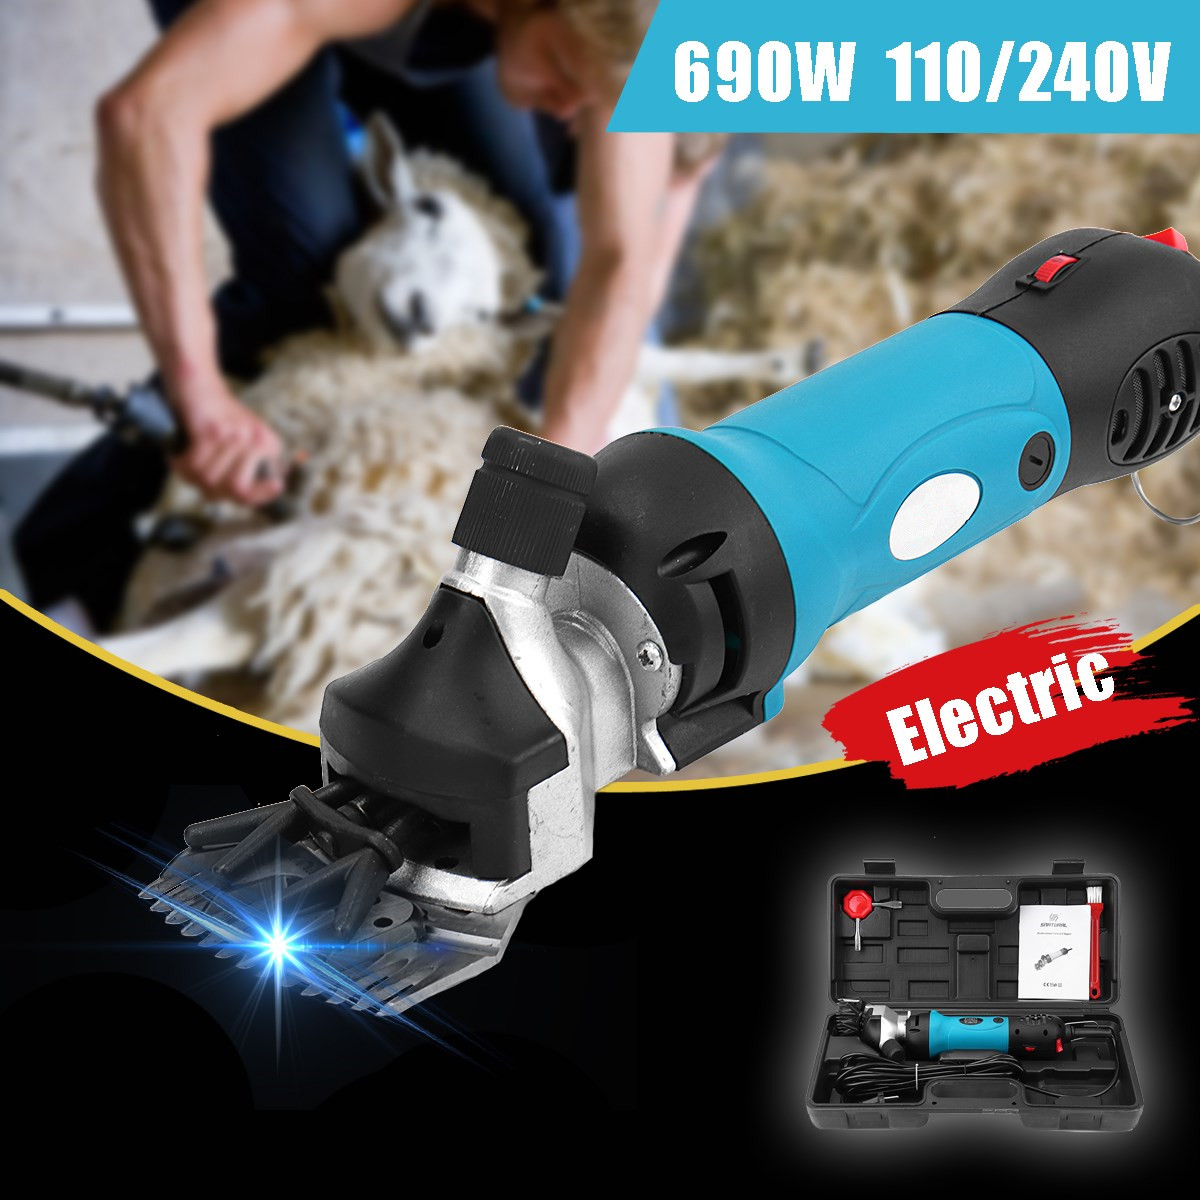 Doersupp Electric Shearing Clipper Accessory Sheep Goat Cutter Scissors Cutting Tool Clipper Machines 690W 110V/240V US/EU PlugDoersupp Electric Shearing Clipper Accessory Sheep Goat Cutter Scissors Cutting Tool Clipper Machines 690W 110V/240V US/EU Plug